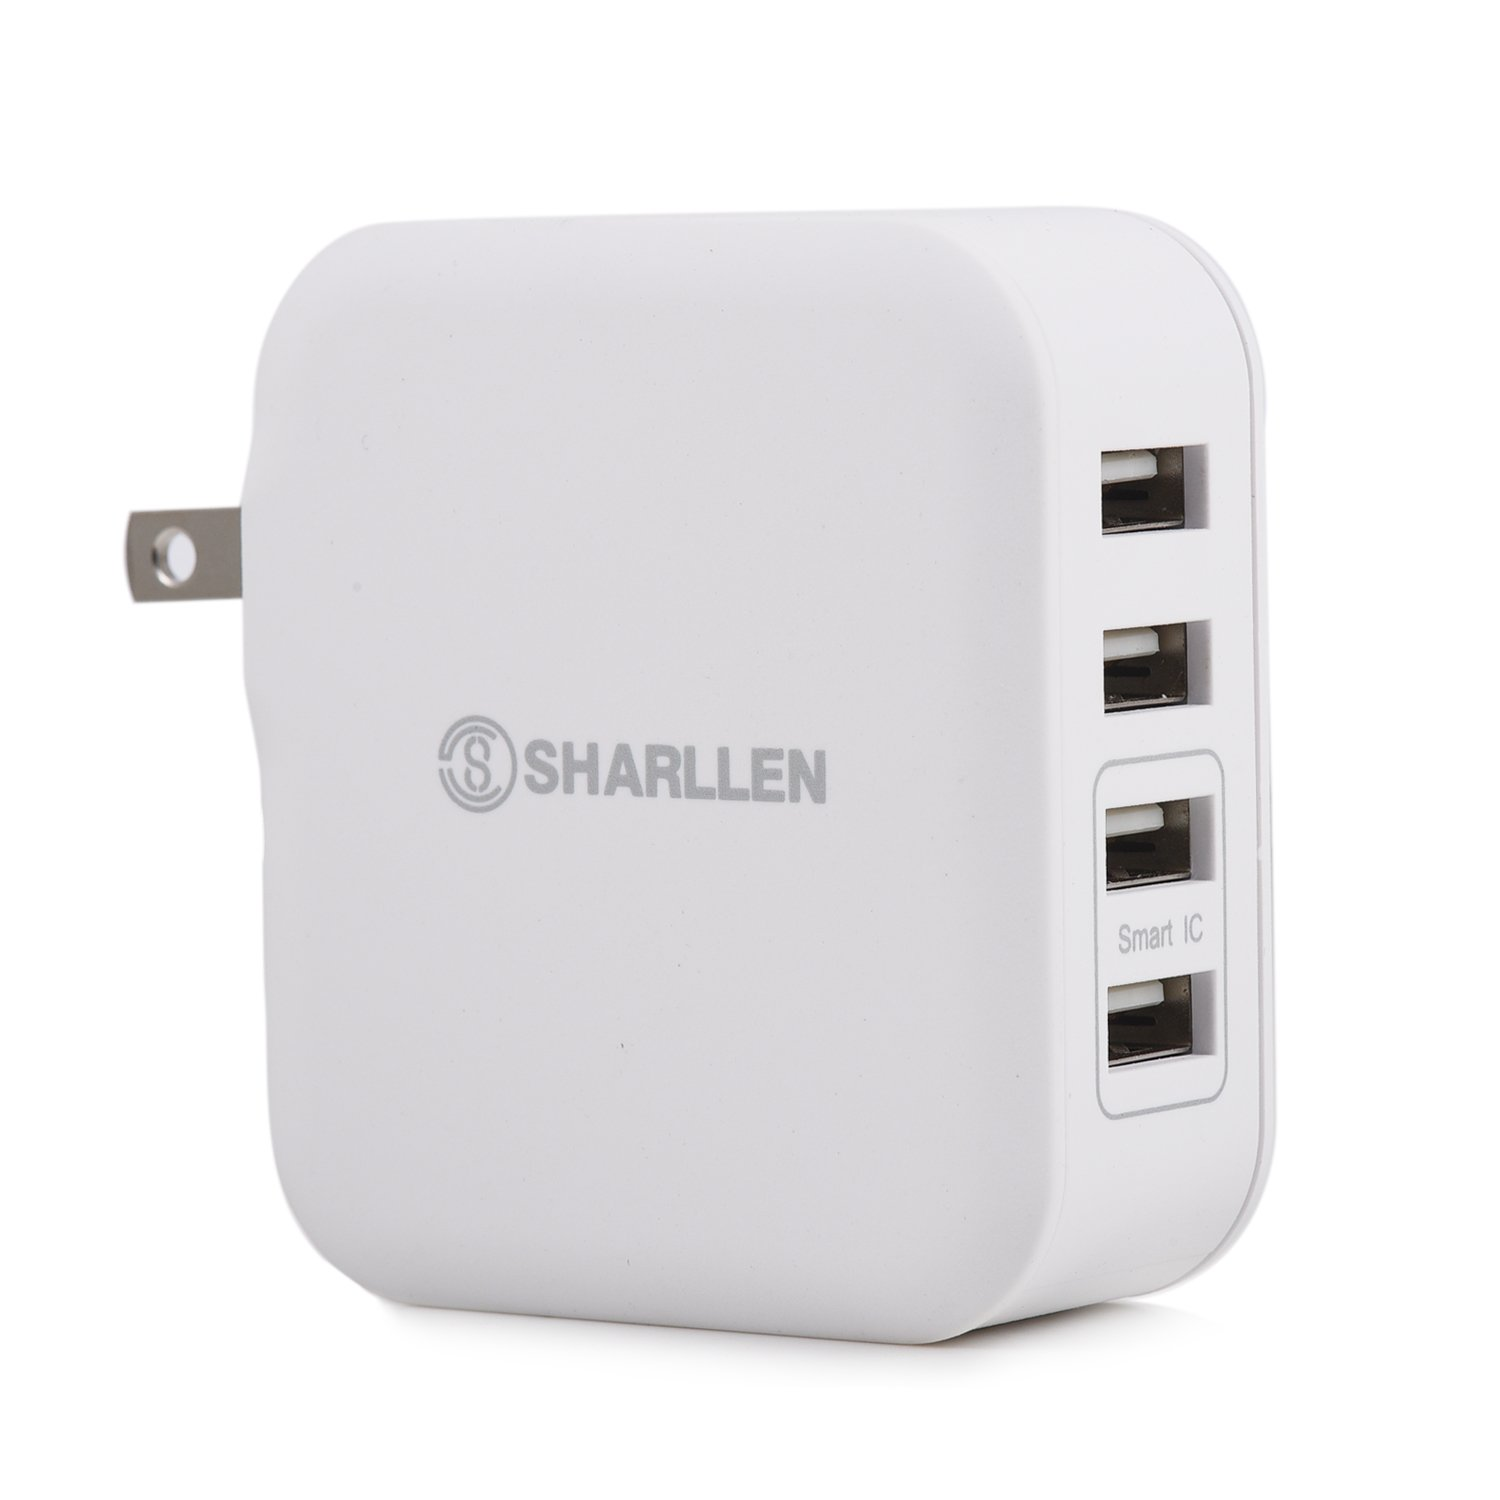 4-Port USB Wall Travel Charger,31 W/6.2A Charger Desktop Charger With Folding Plug Portable Travel Charger for iPhone 7/6s, iPad Pro/Air 2/mini, Galaxy S7/S6, Note 5/4-SHARLLEN